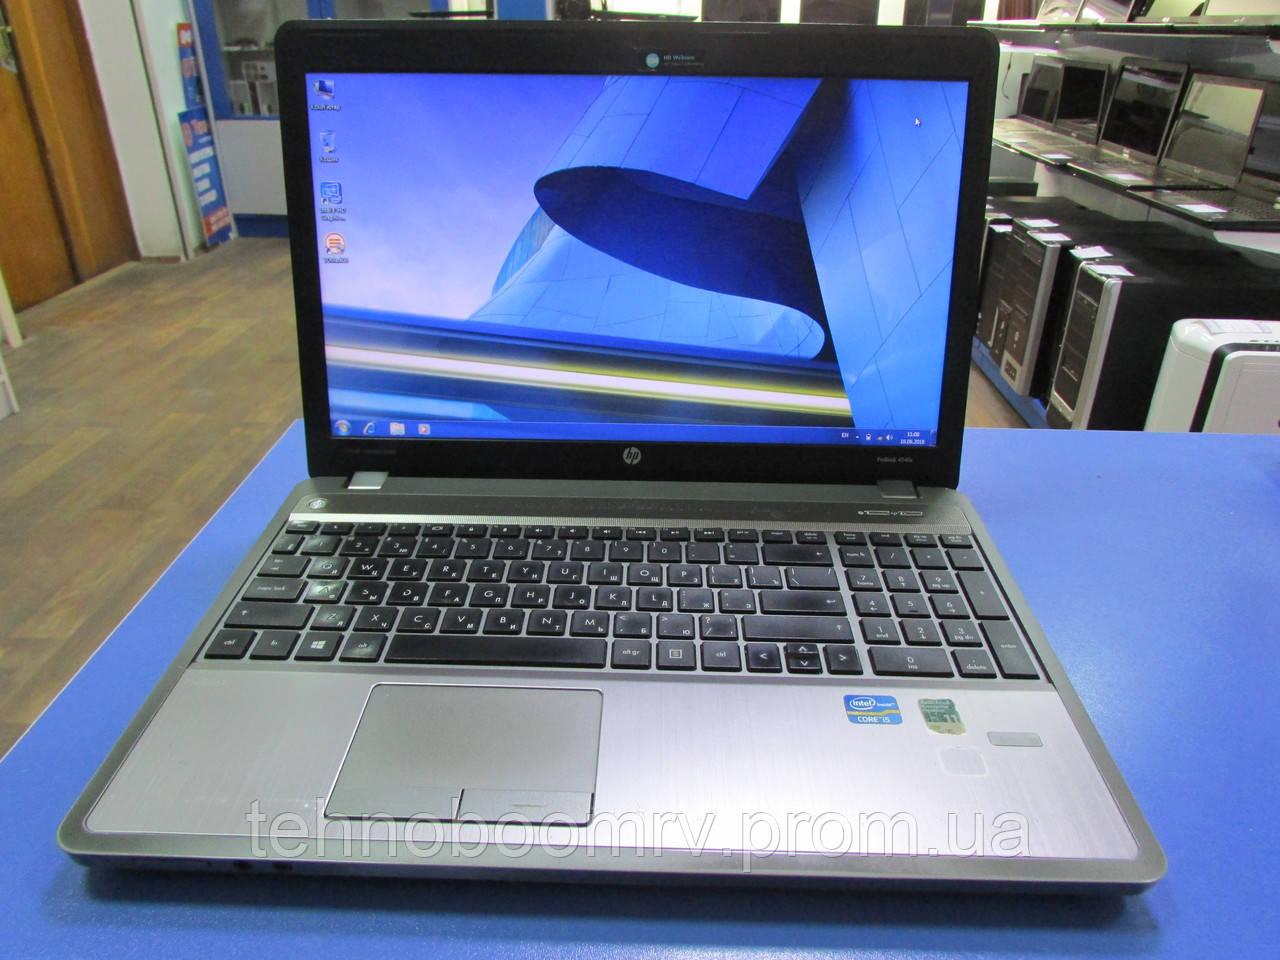 Бизнес!HP ProBook 4540s/Intel i5-3210M 3.1GHz/AMD 7650M 2GB/DDR3 4GB